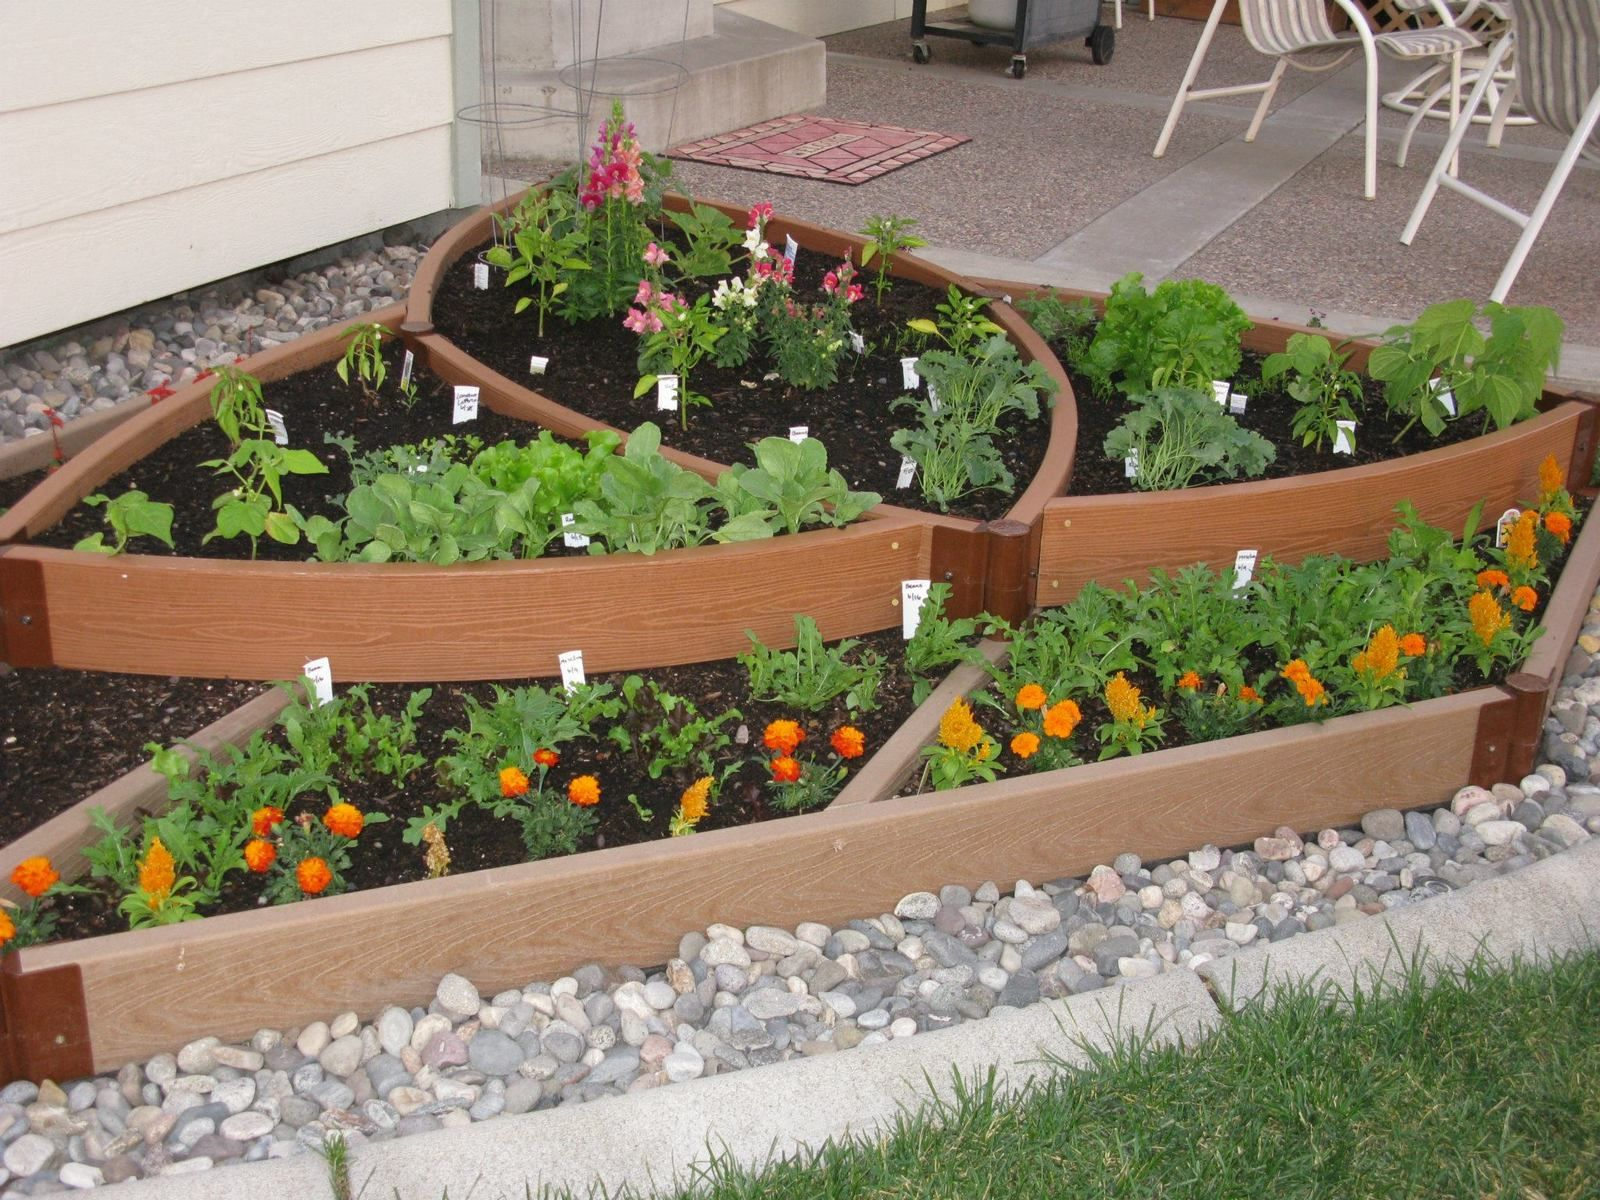 Designing A Vegetable Garden With Raised Beds raised bed vegetable gardengate and fence attached right to beds Find This Pin And More On Gardening In Raised Beds Vegetable Garden Design